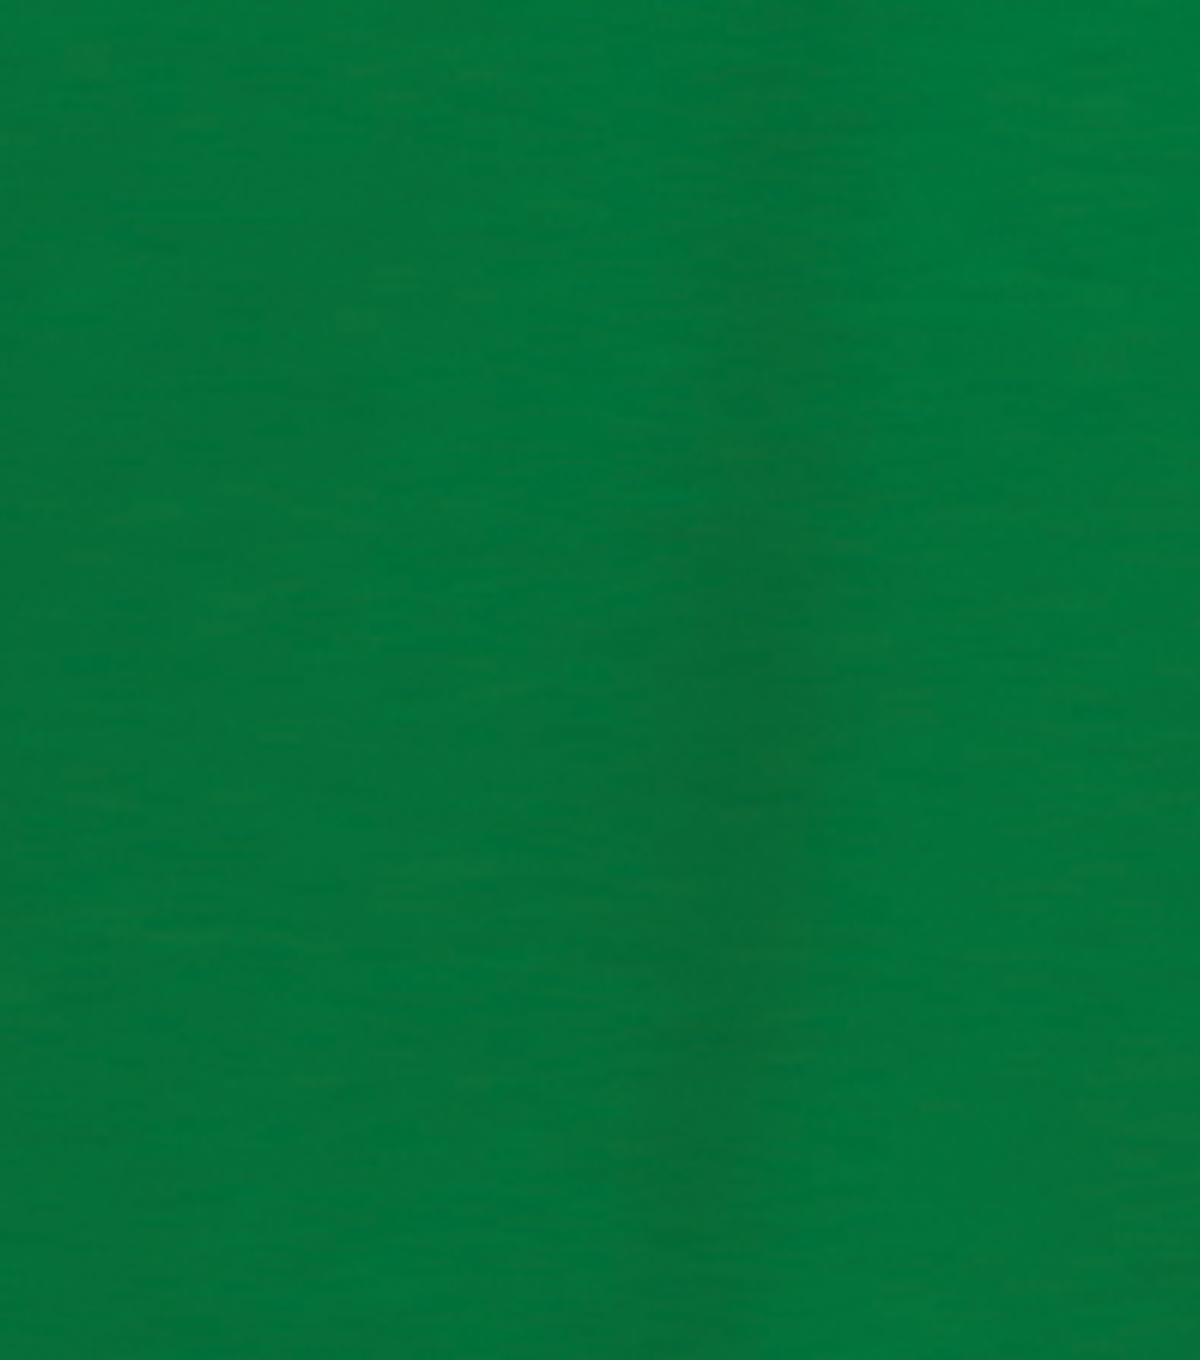 Krylon Fluorescent Spray Green 3106